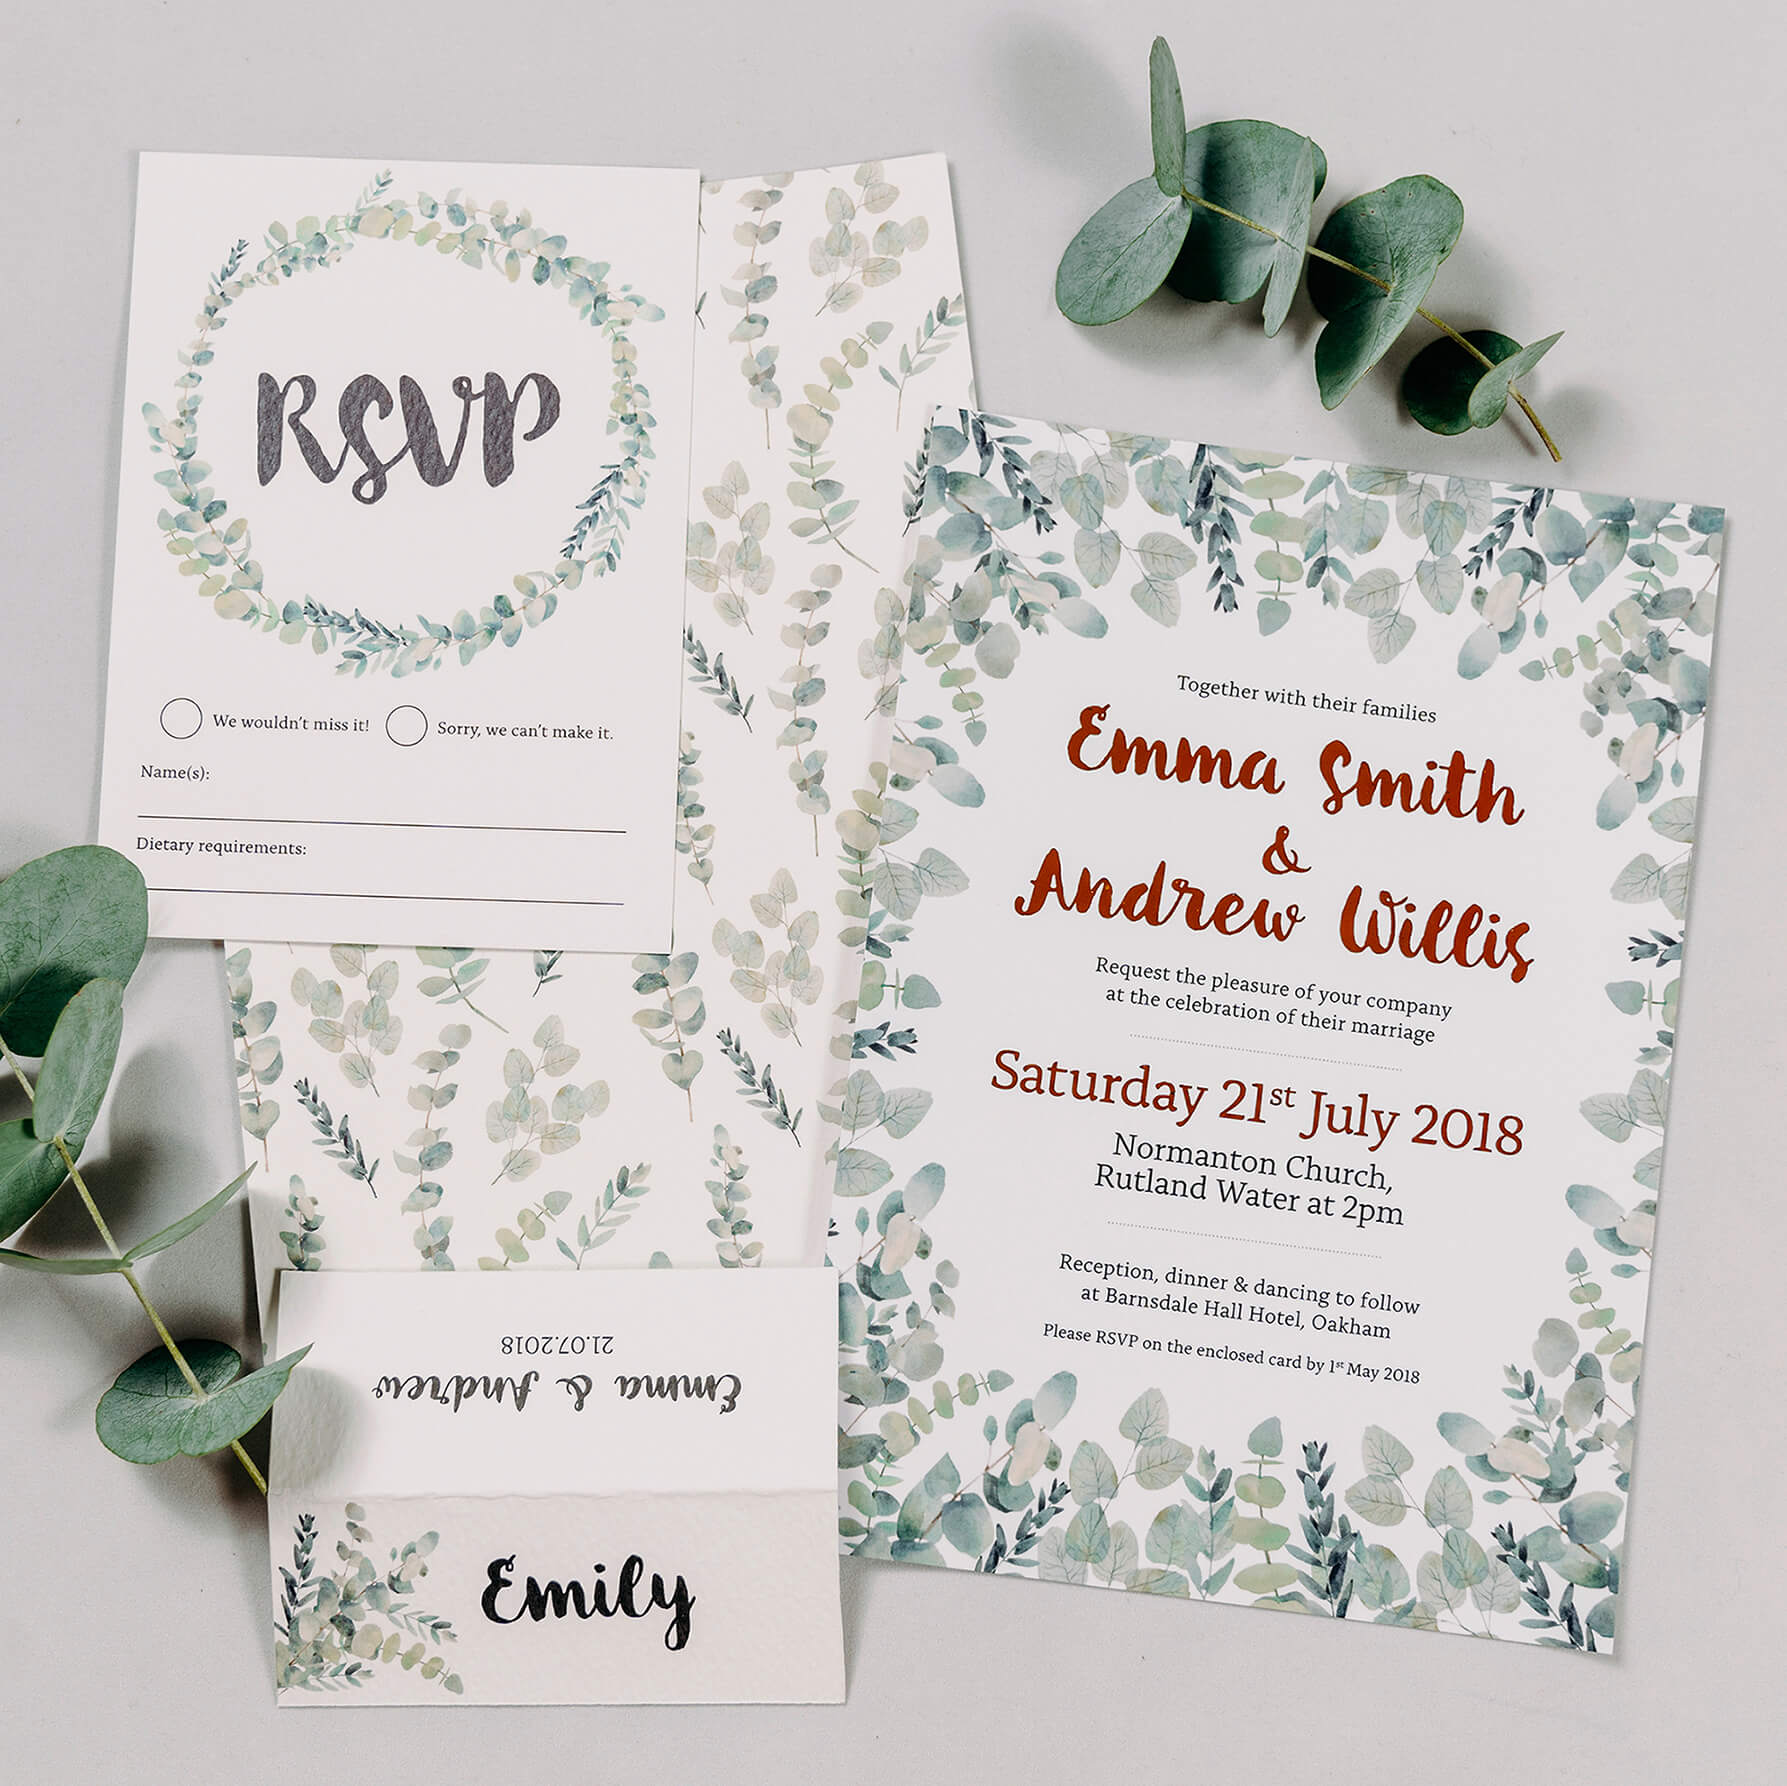 Rustic Green & White Eucalyptus Wedding Invitation With Copper Digital Foil, RSVP Postcard & Table Place Name Card